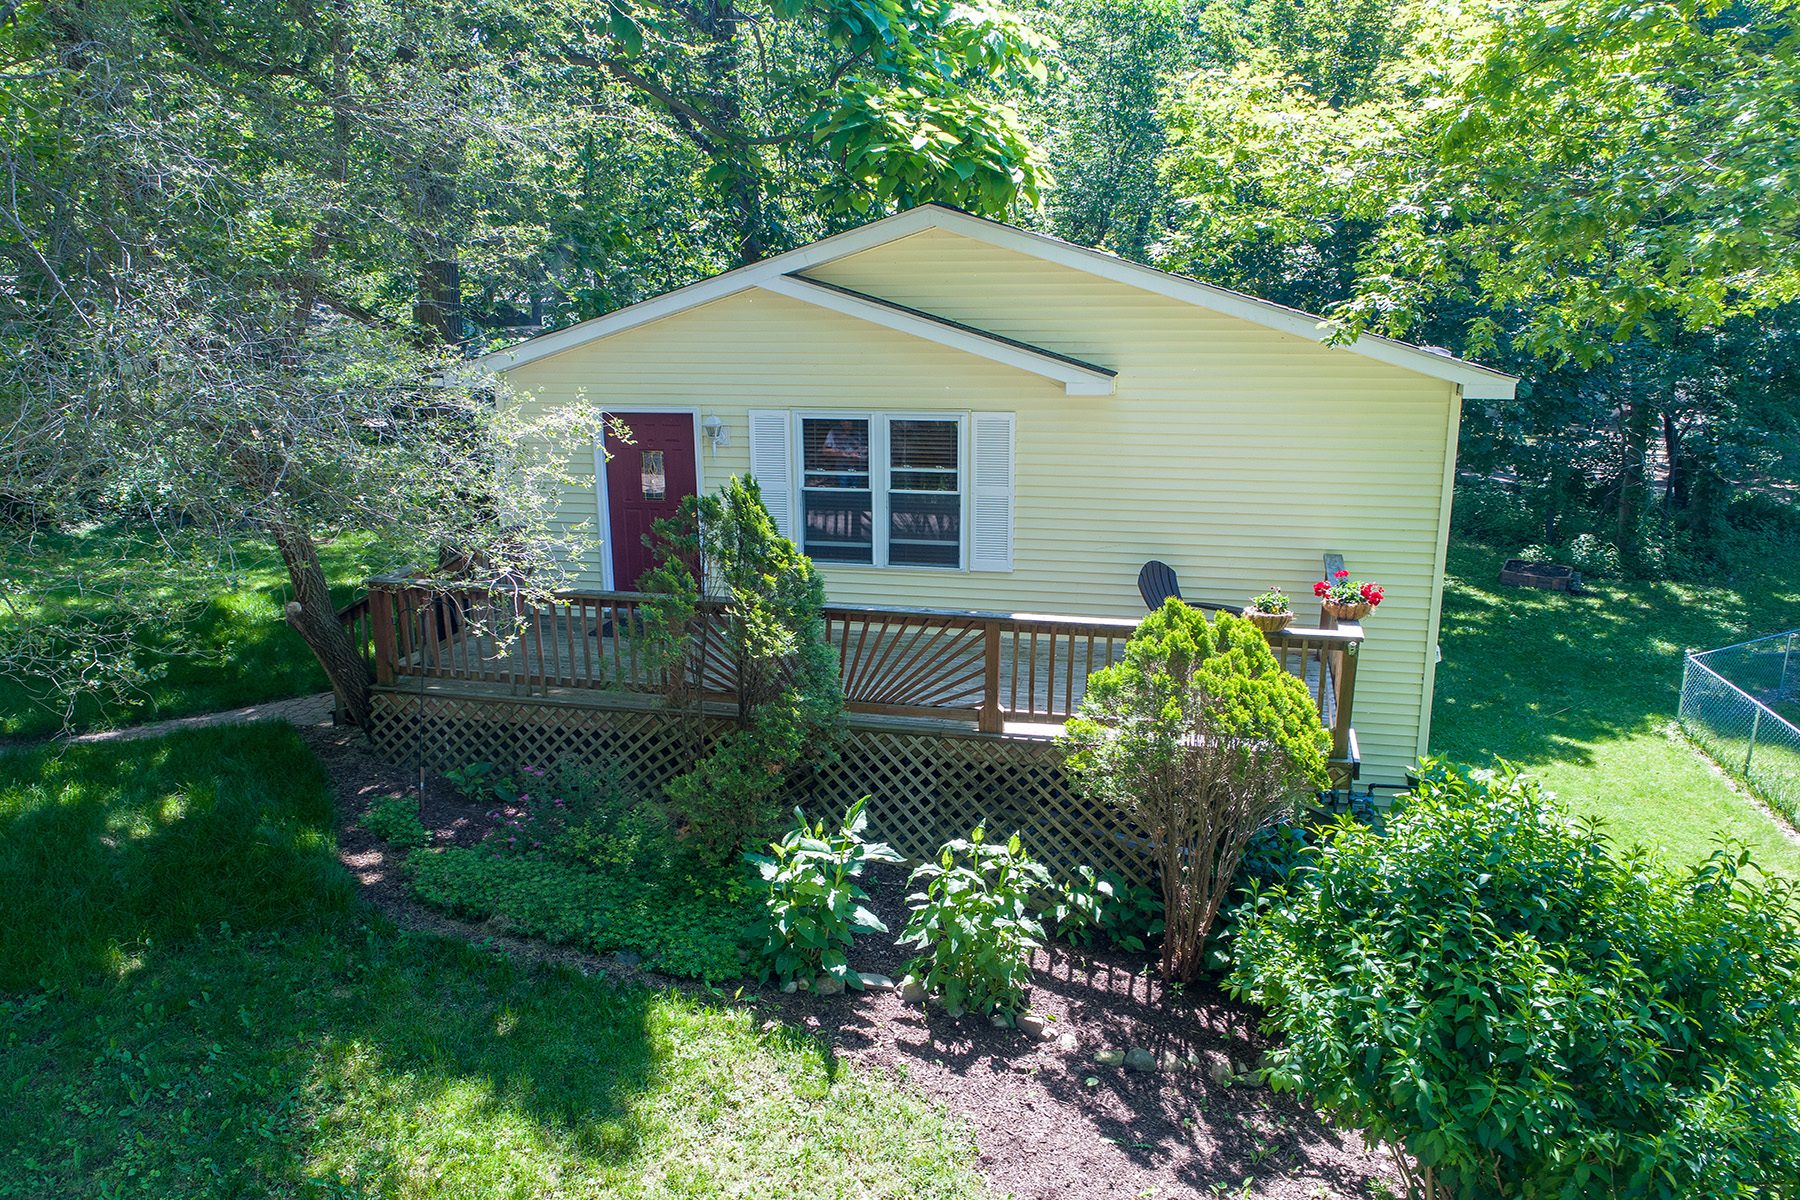 Single Family Homes for Sale at Milford 240 W. Canyon Drive Milford, Michigan 48380 United States